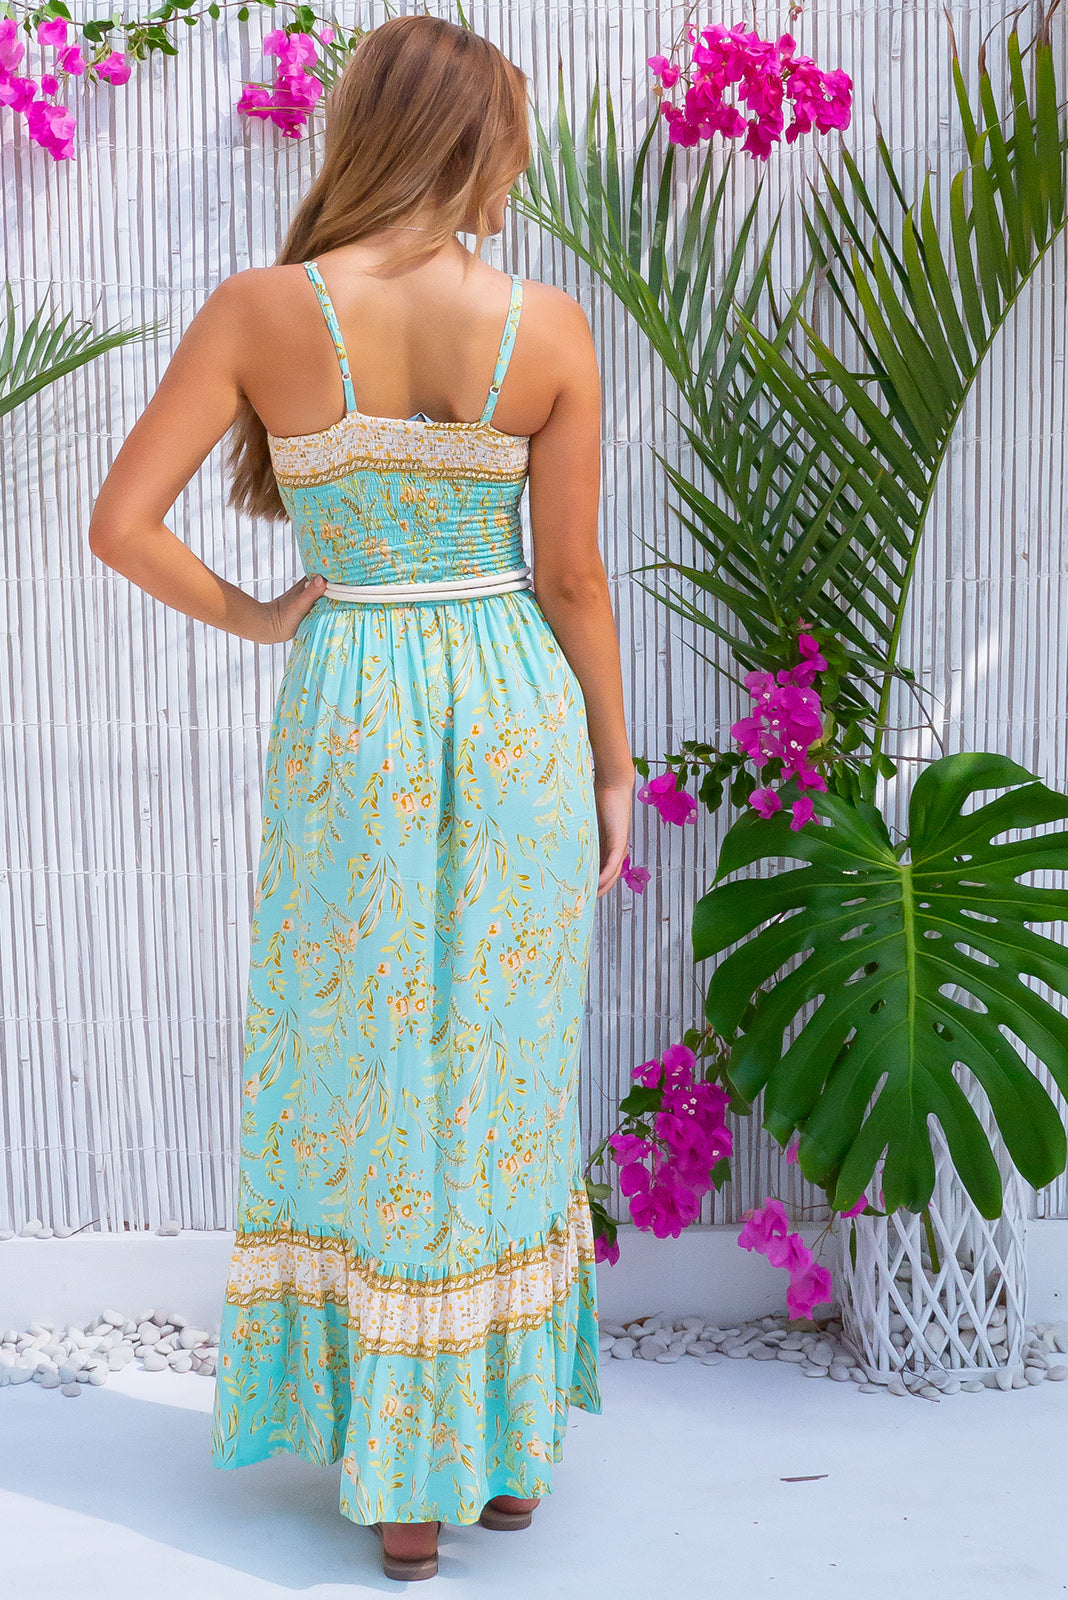 Poetry Magical Mint Maxi Dress, bohemian summer style, side pockets, elasticated shirred bodice, mint base with medium floral print featuring gold and white.